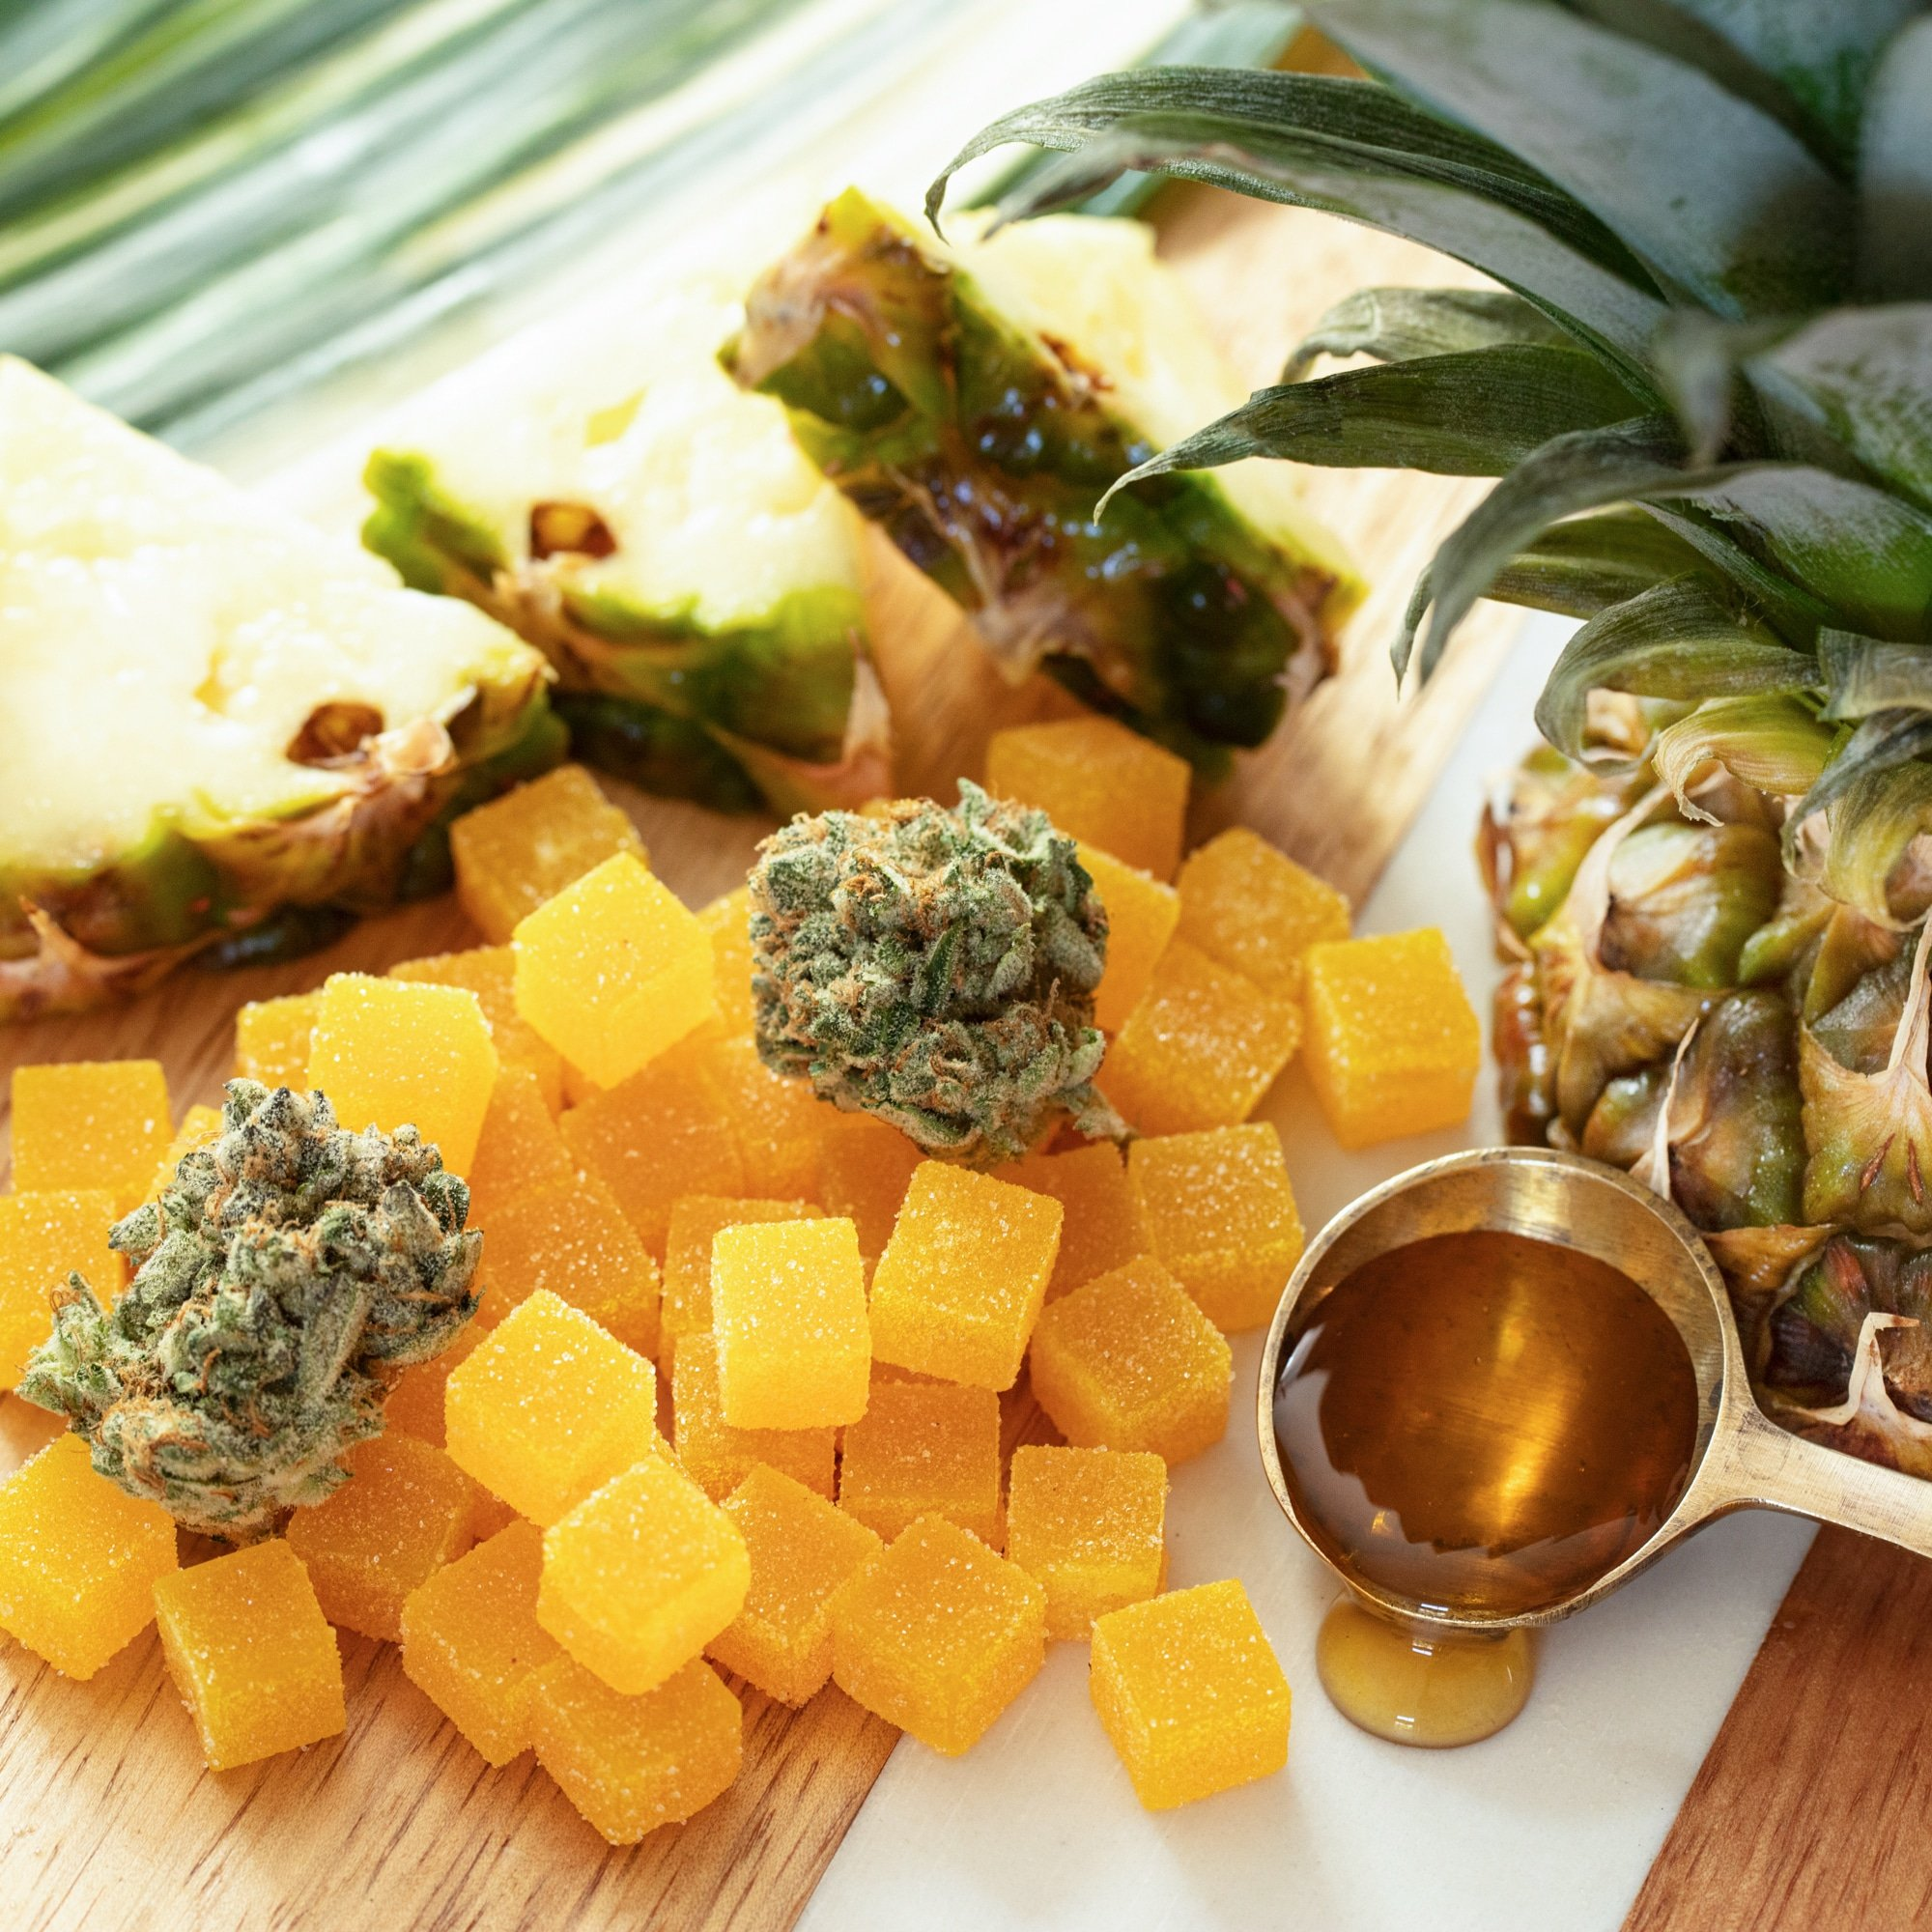 PLUS introduces cannabis-infused edibles with strain-specific gummies 10